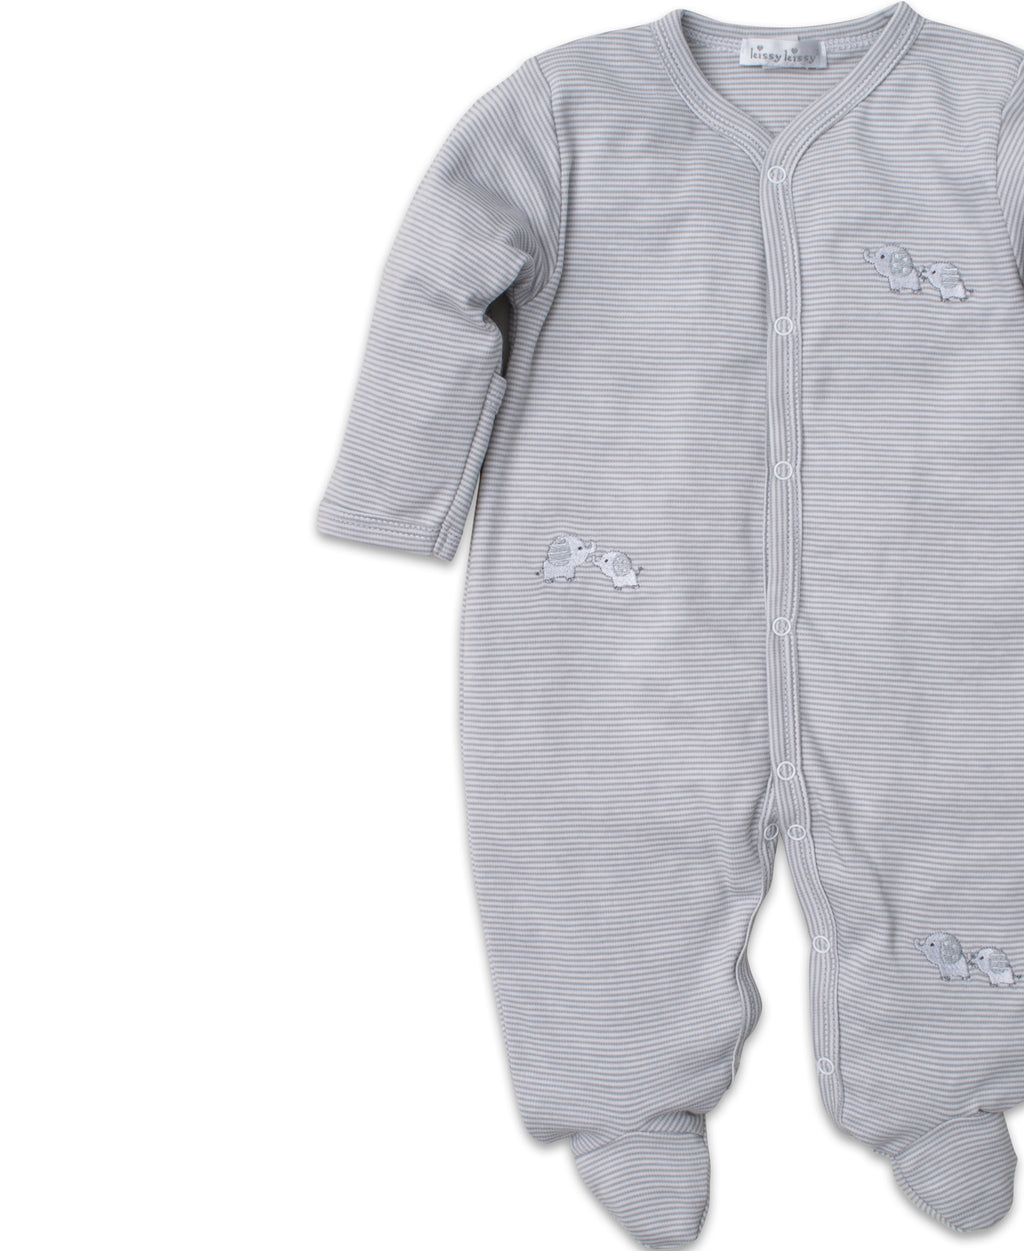 Baby Trunks Silver Stripe Footie